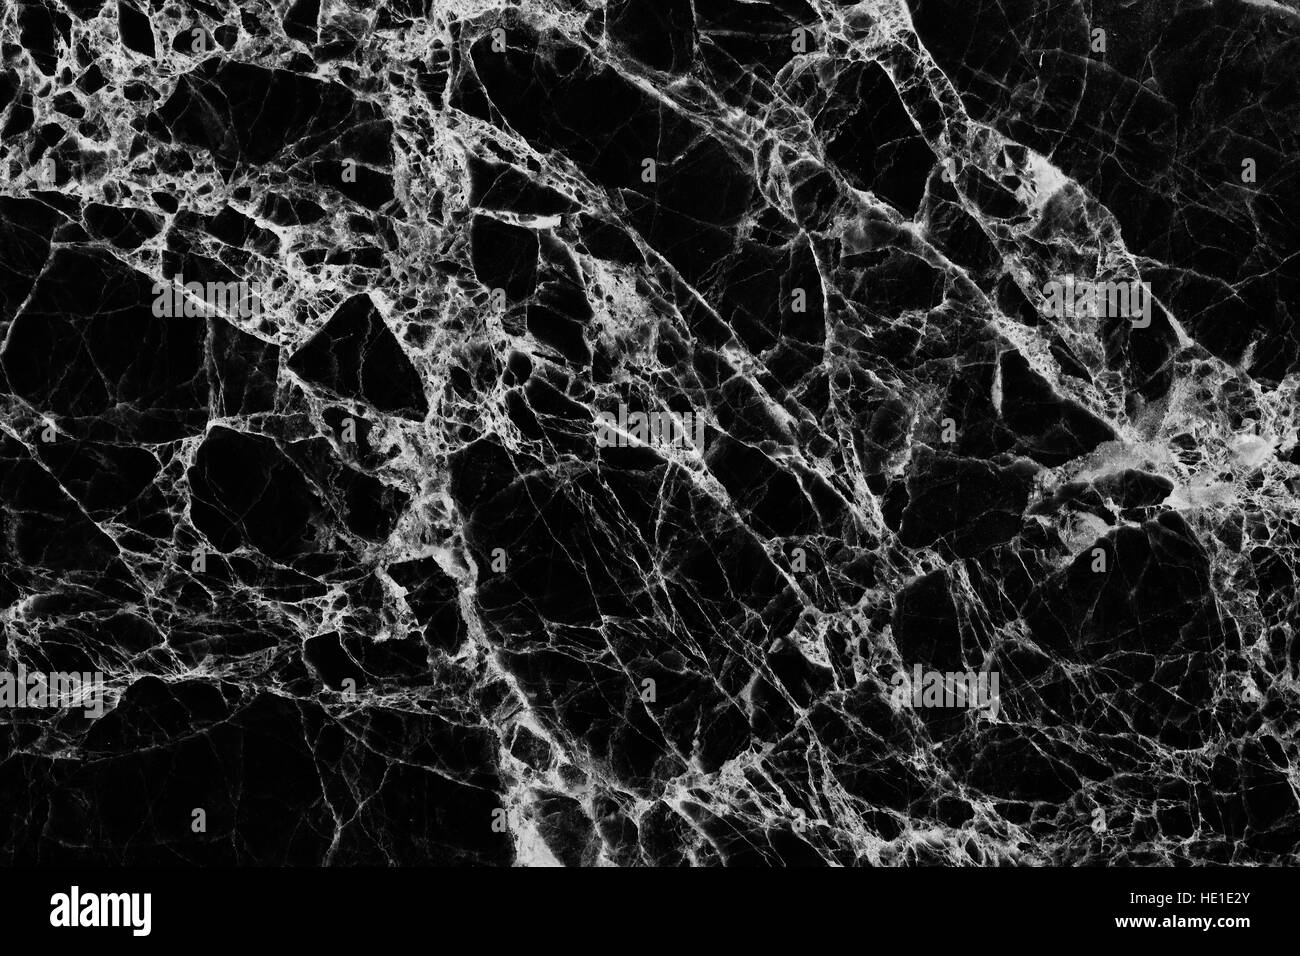 Black And White Marble Background Black Marble Pattern Texture Stock Photo Royalty Free Image